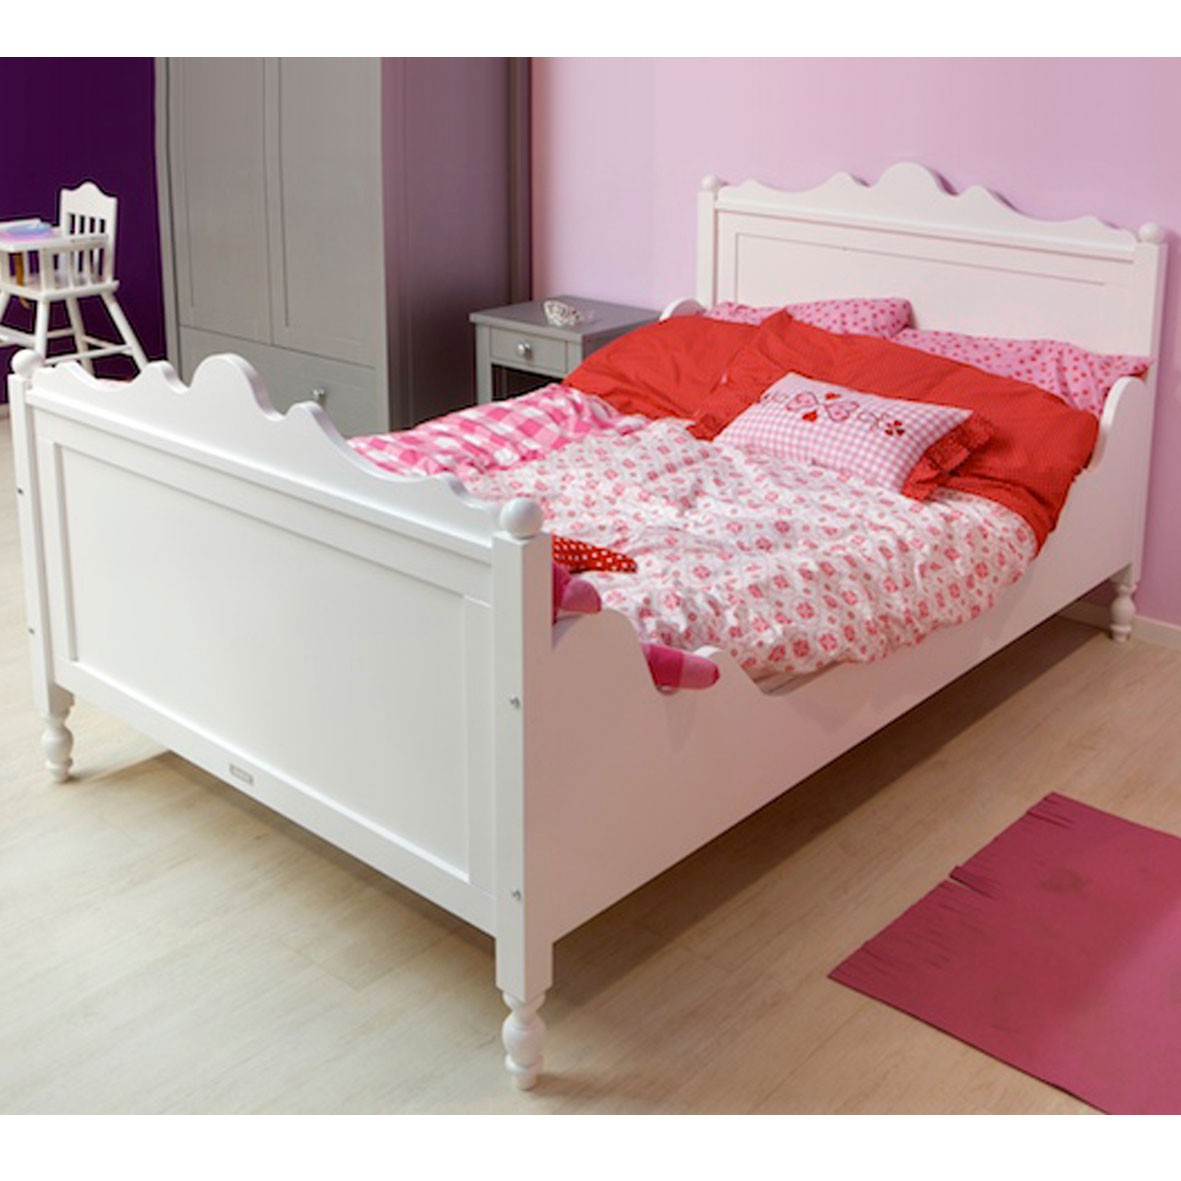 twin bett belle 120 x 200 cm bopita mylittleroom. Black Bedroom Furniture Sets. Home Design Ideas